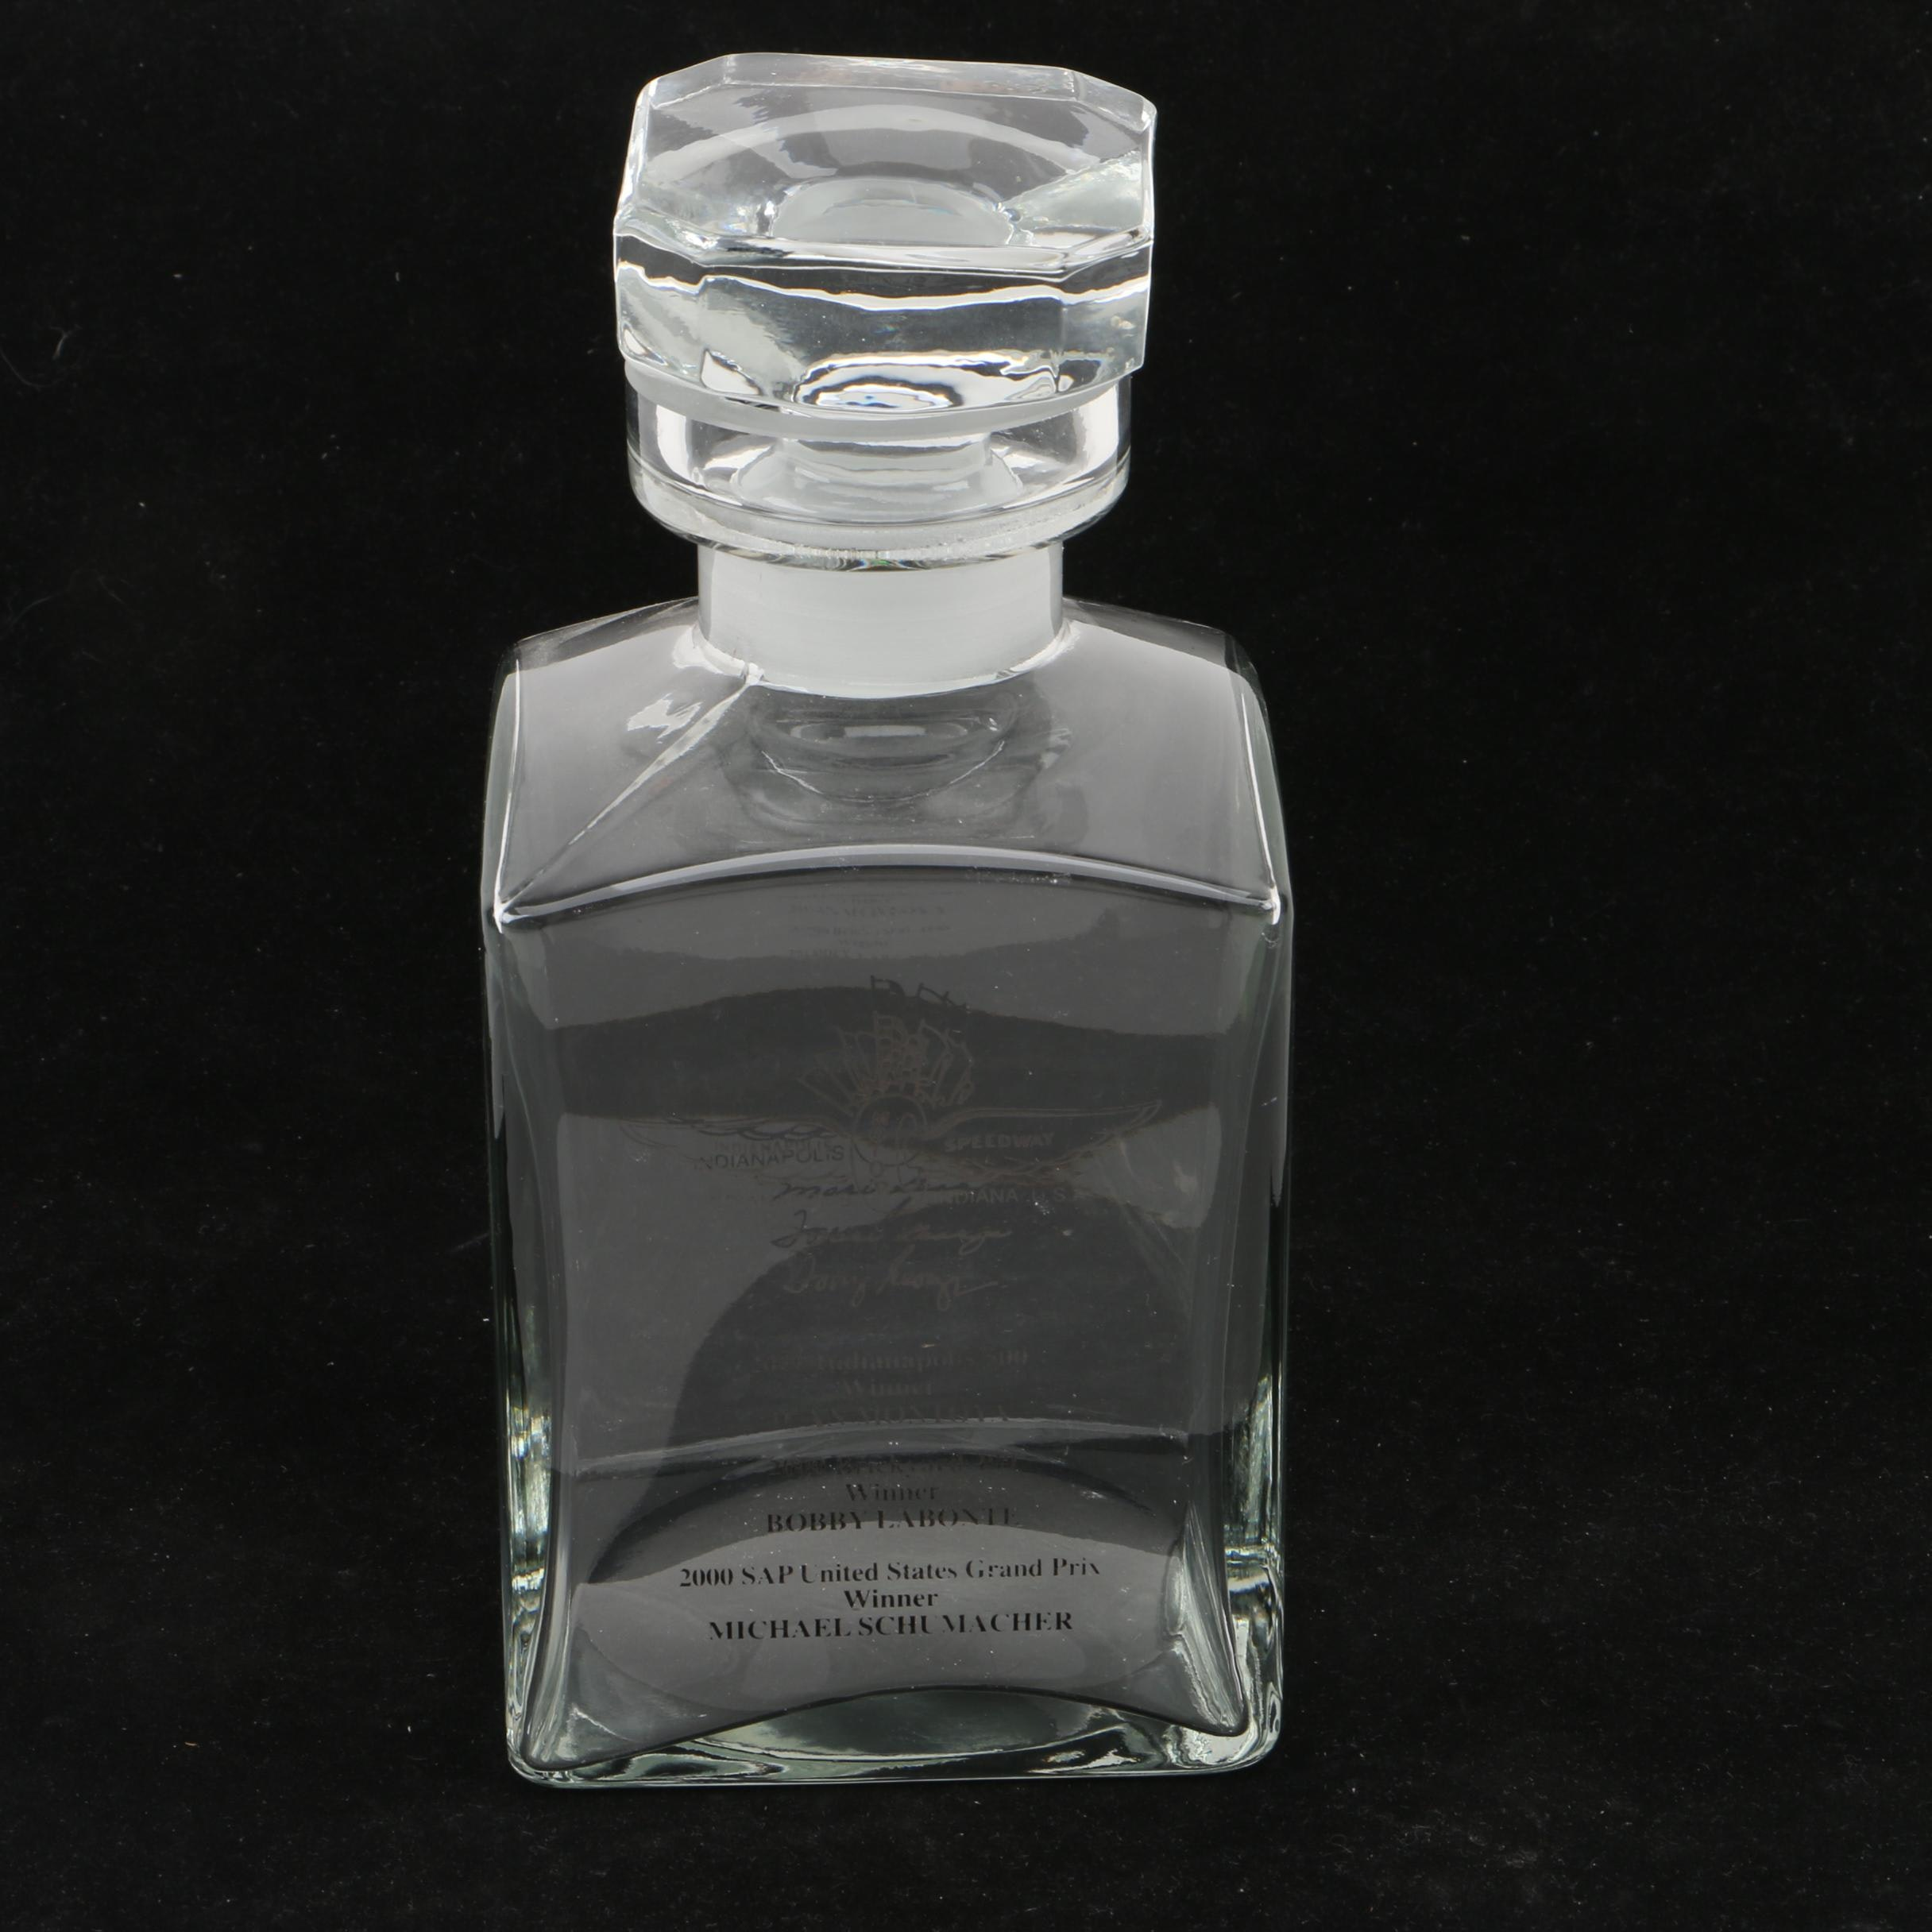 Indianapolis Motor Speedway Commemorative Decanter